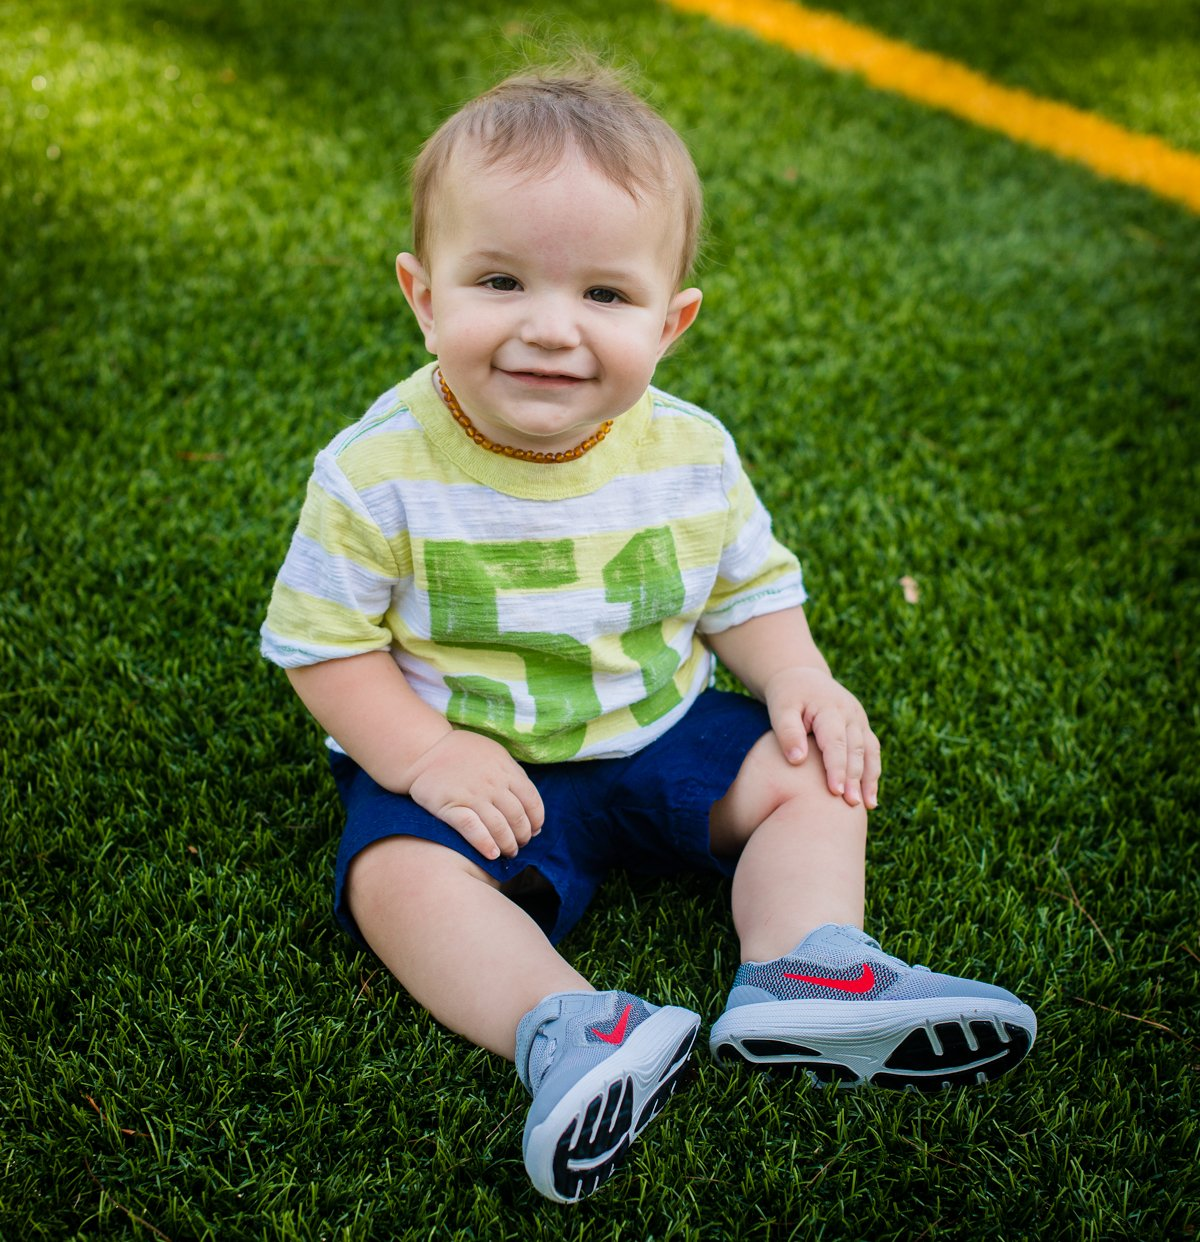 How I'm Preparing For 3 Big Transitions This Fall - Tips From A Mom Of 3 Littles 17 Daily Mom Parents Portal